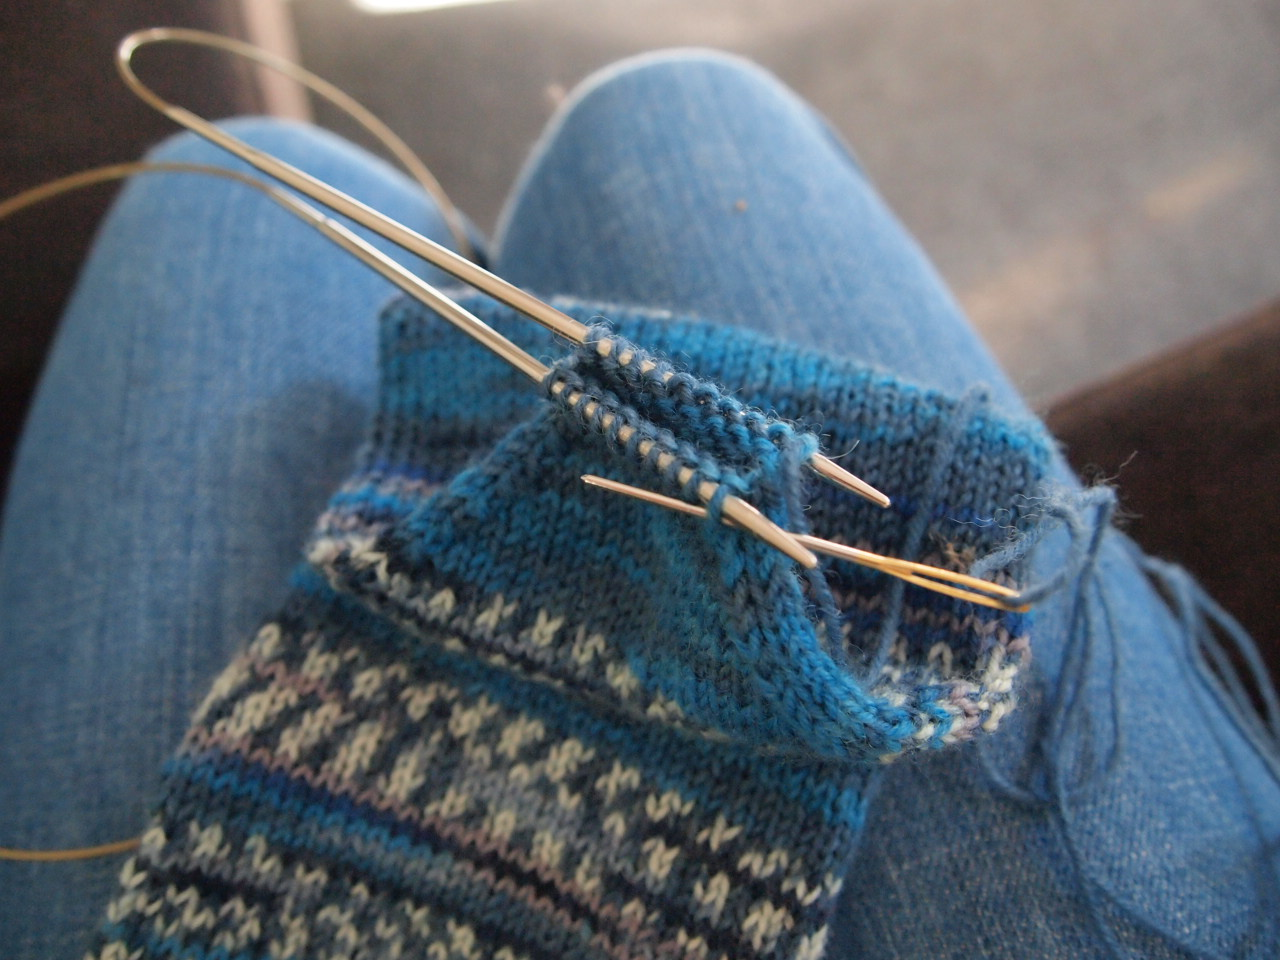 Knit Kitchener Stitch To Finish A Sock : Saturday Socks, finished on a Thursday, with a successful attempt at Kitchene...